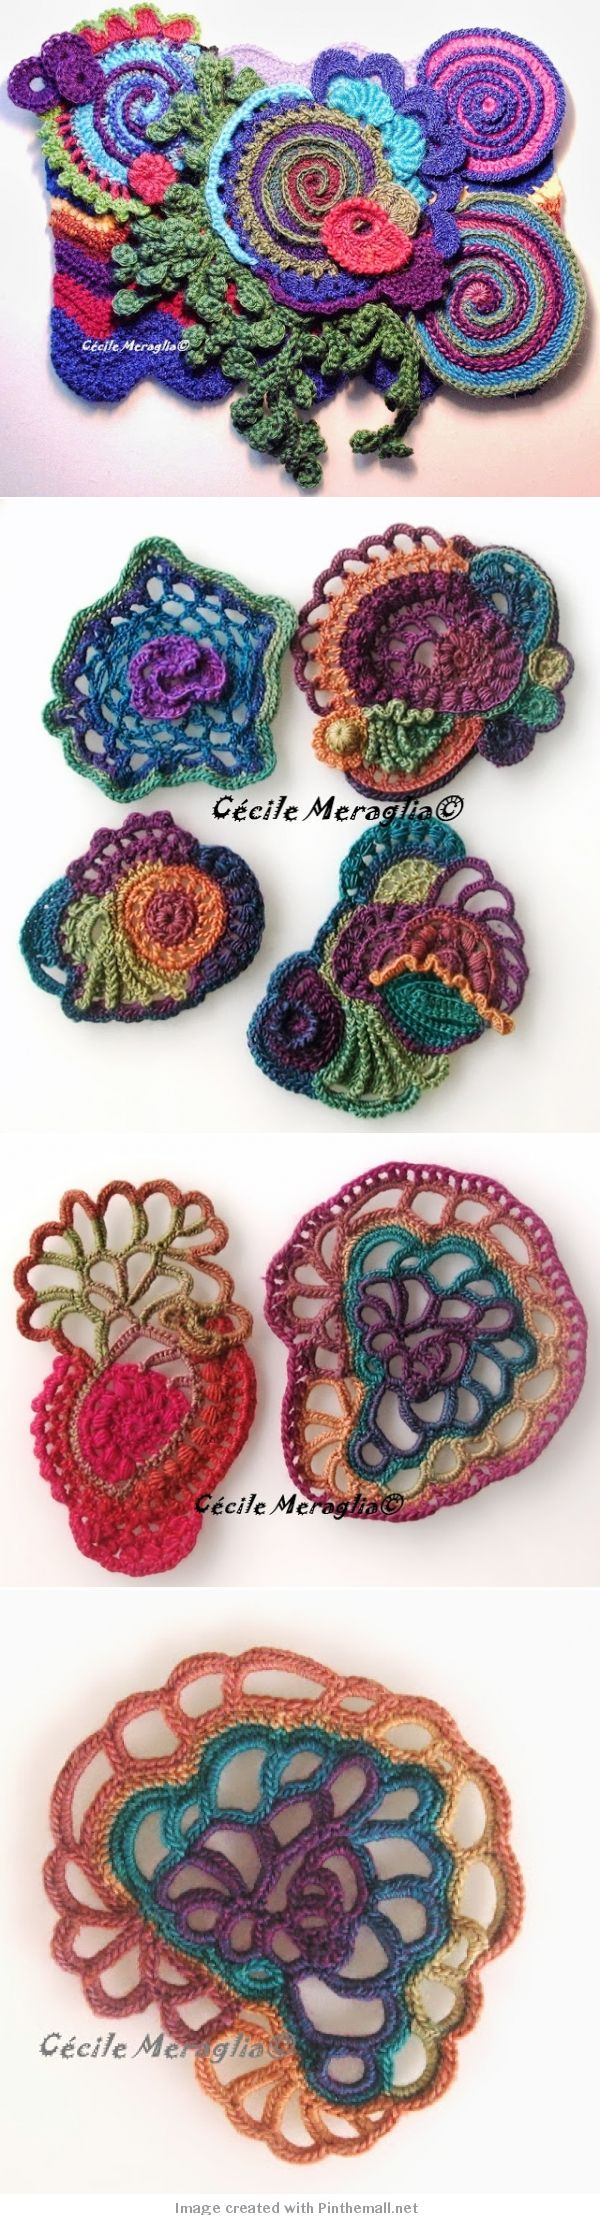 crochet - freeform scrumbles -- I've been wanting to learn to freeform crochet for a while now